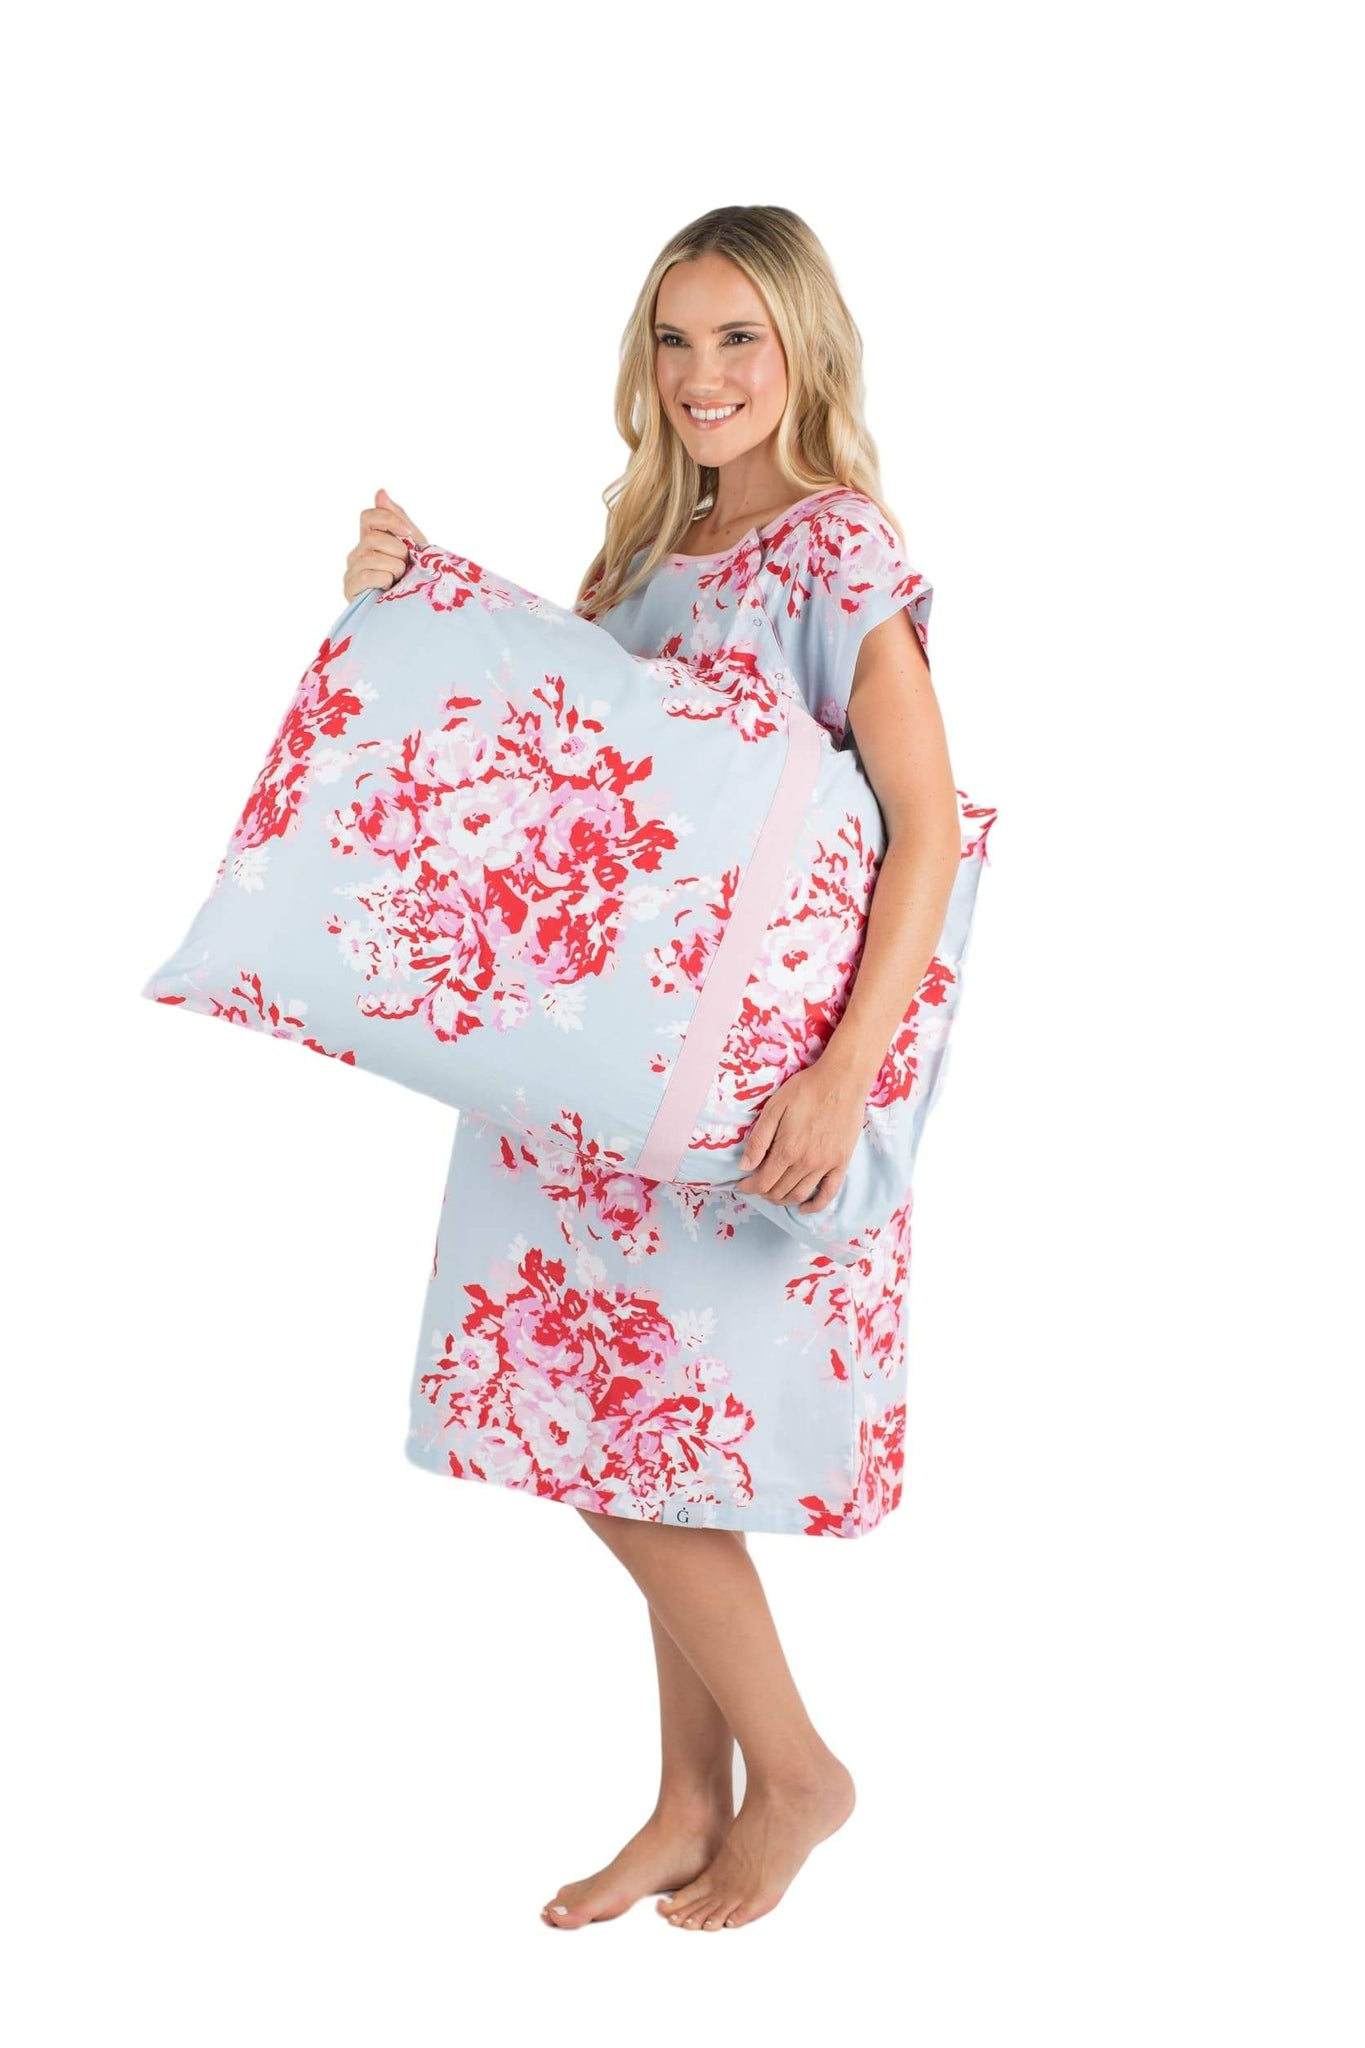 Mae Gownie & Pillowcase Set Maternity Delivery Labor Hospital Gown ...